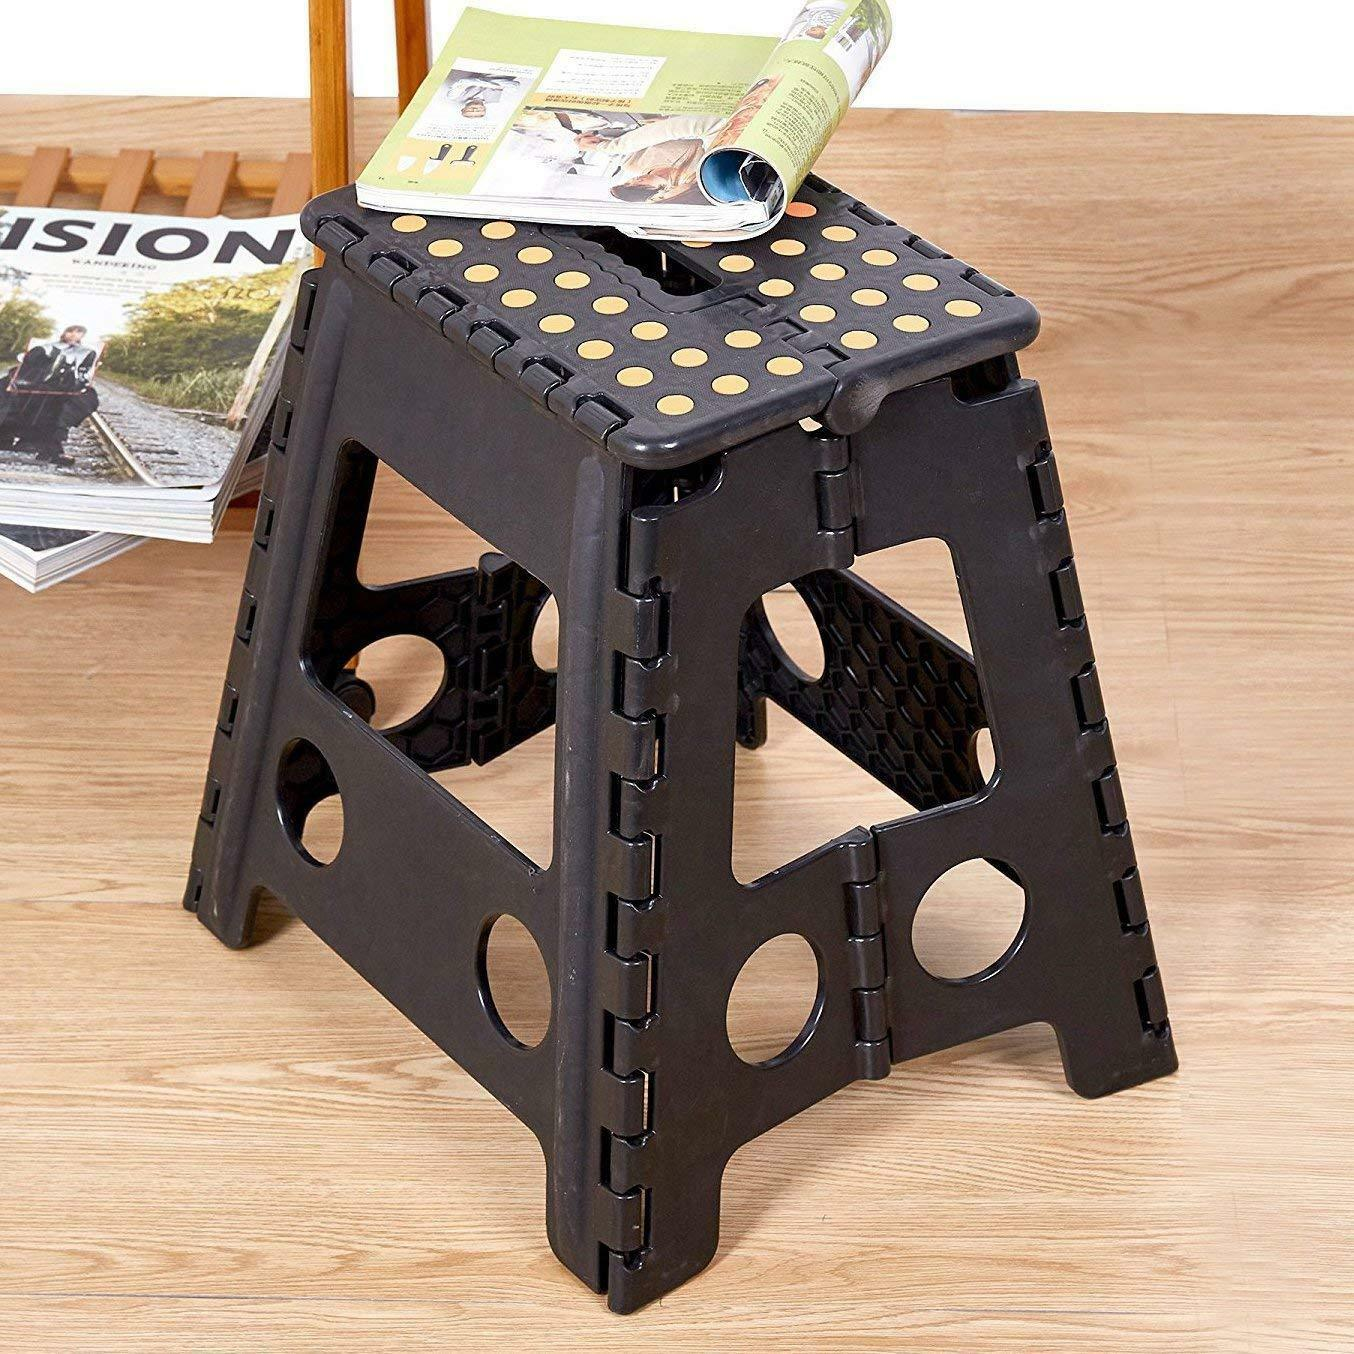 Groovy Details About Folding Plastic Step Stool Seat Chair Kidsadults For Kitchen Garden Bathroom Forskolin Free Trial Chair Design Images Forskolin Free Trialorg